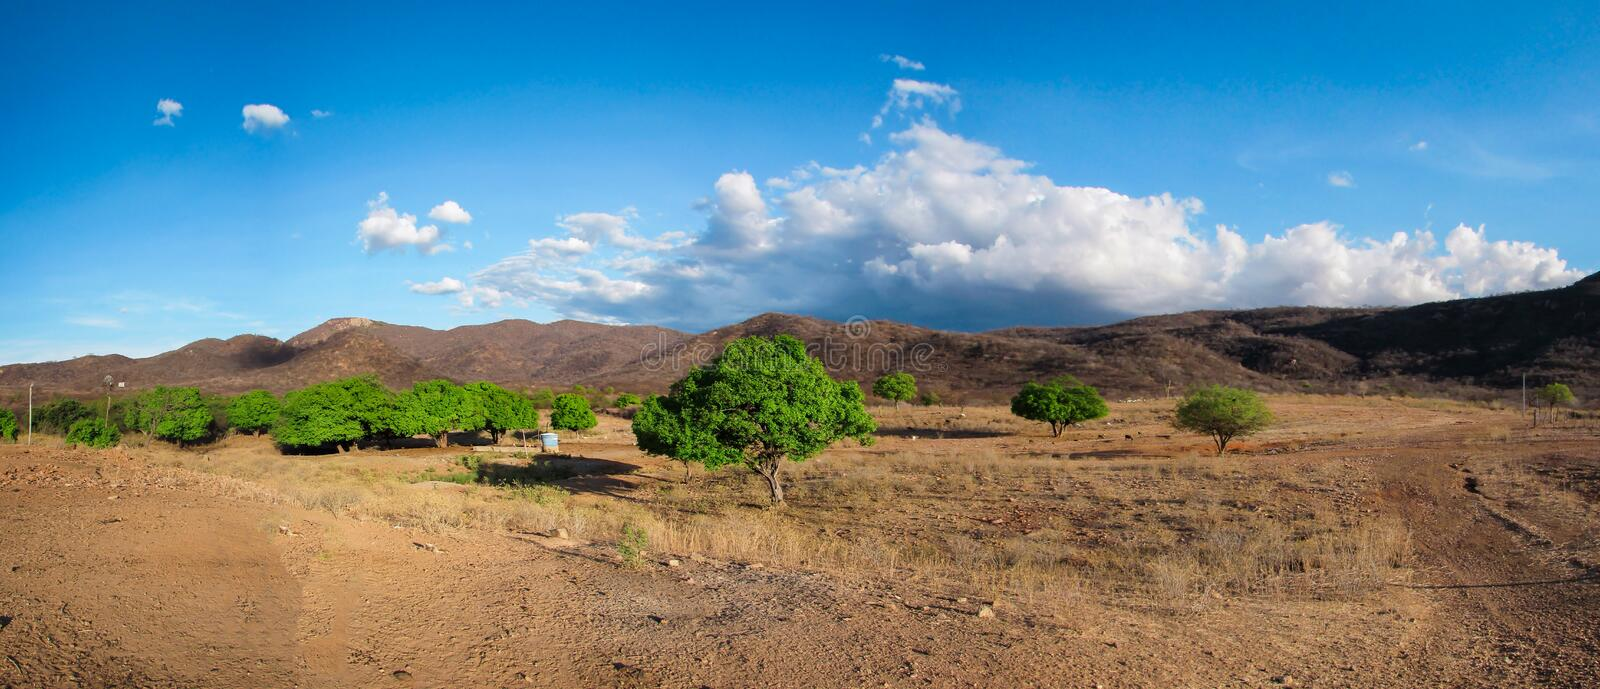 Panorama of a landscape of the caatinga biome in Brazil, it is possible to see the dry colors of the lack of rain in the stock photography